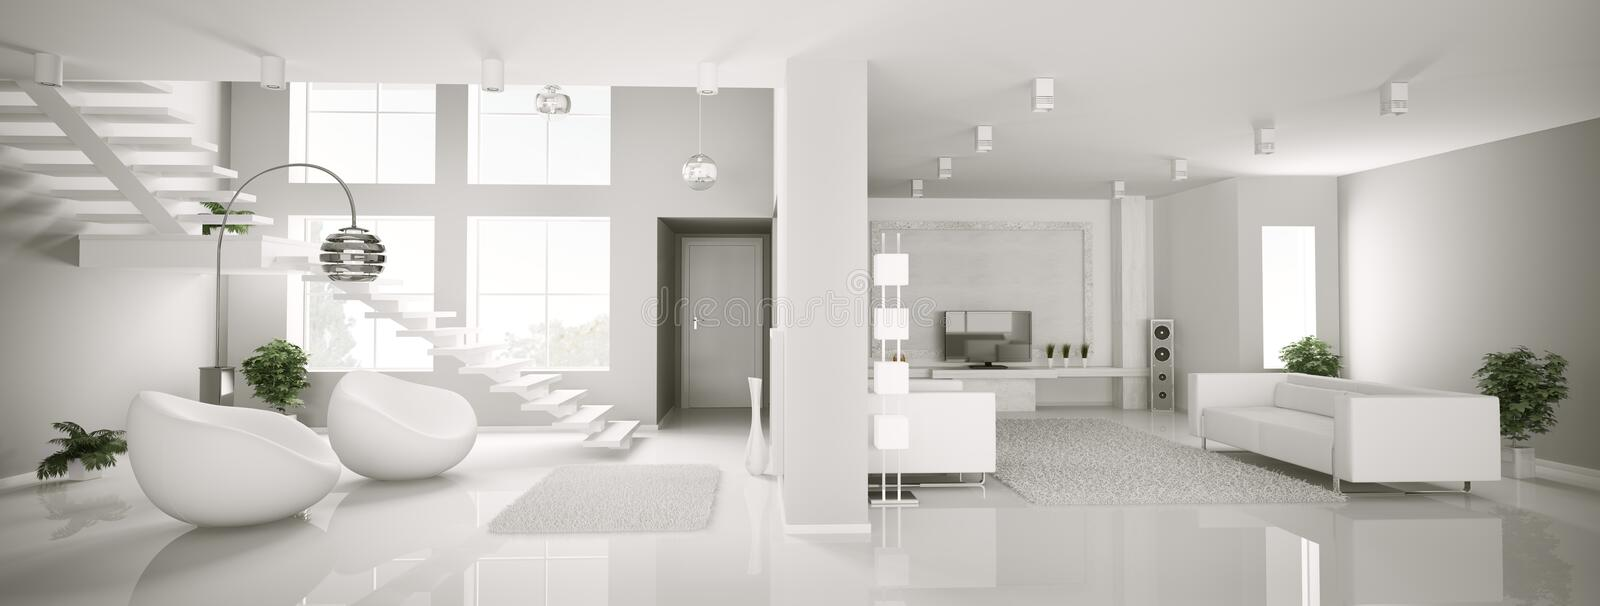 White apartment interior panorama 3d stock illustration